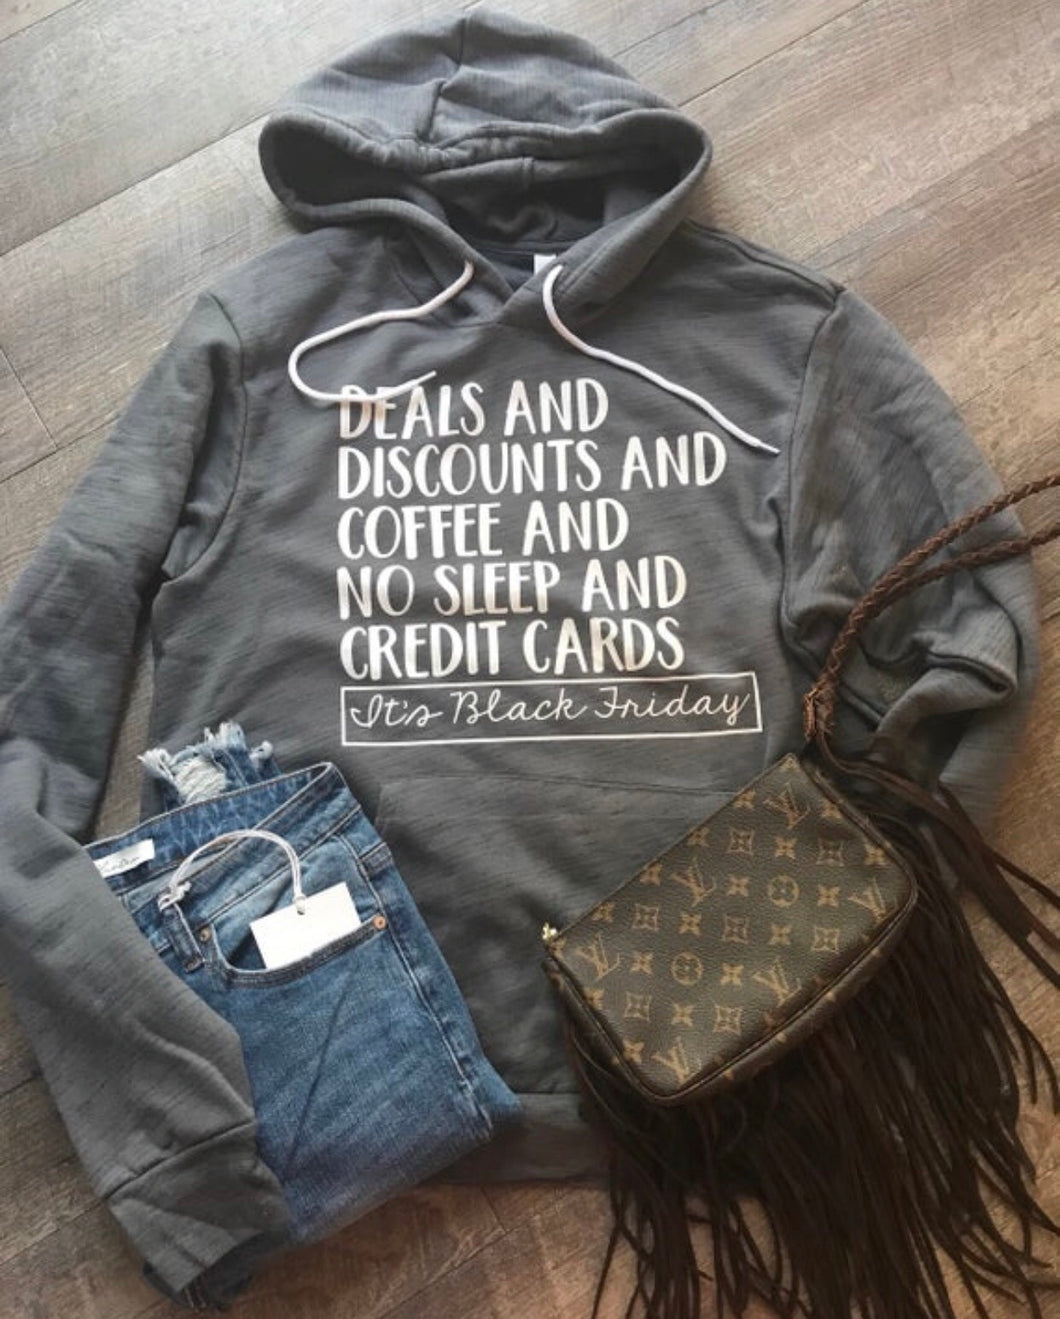 Deals and discounts and coffee and no sleep and credit cards its Black Friday! Hoodie marbled gray bella canvas unisex custom hoodie - Mavictoria Designs Hot Press Express